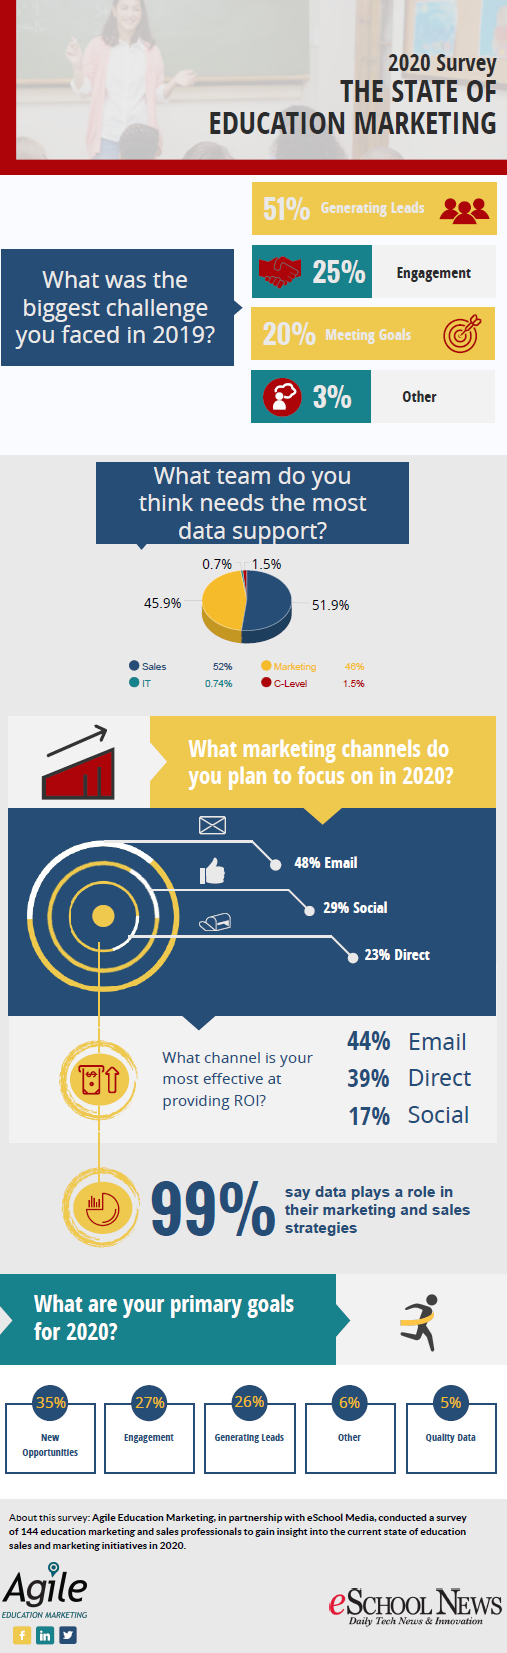 state of education marketing